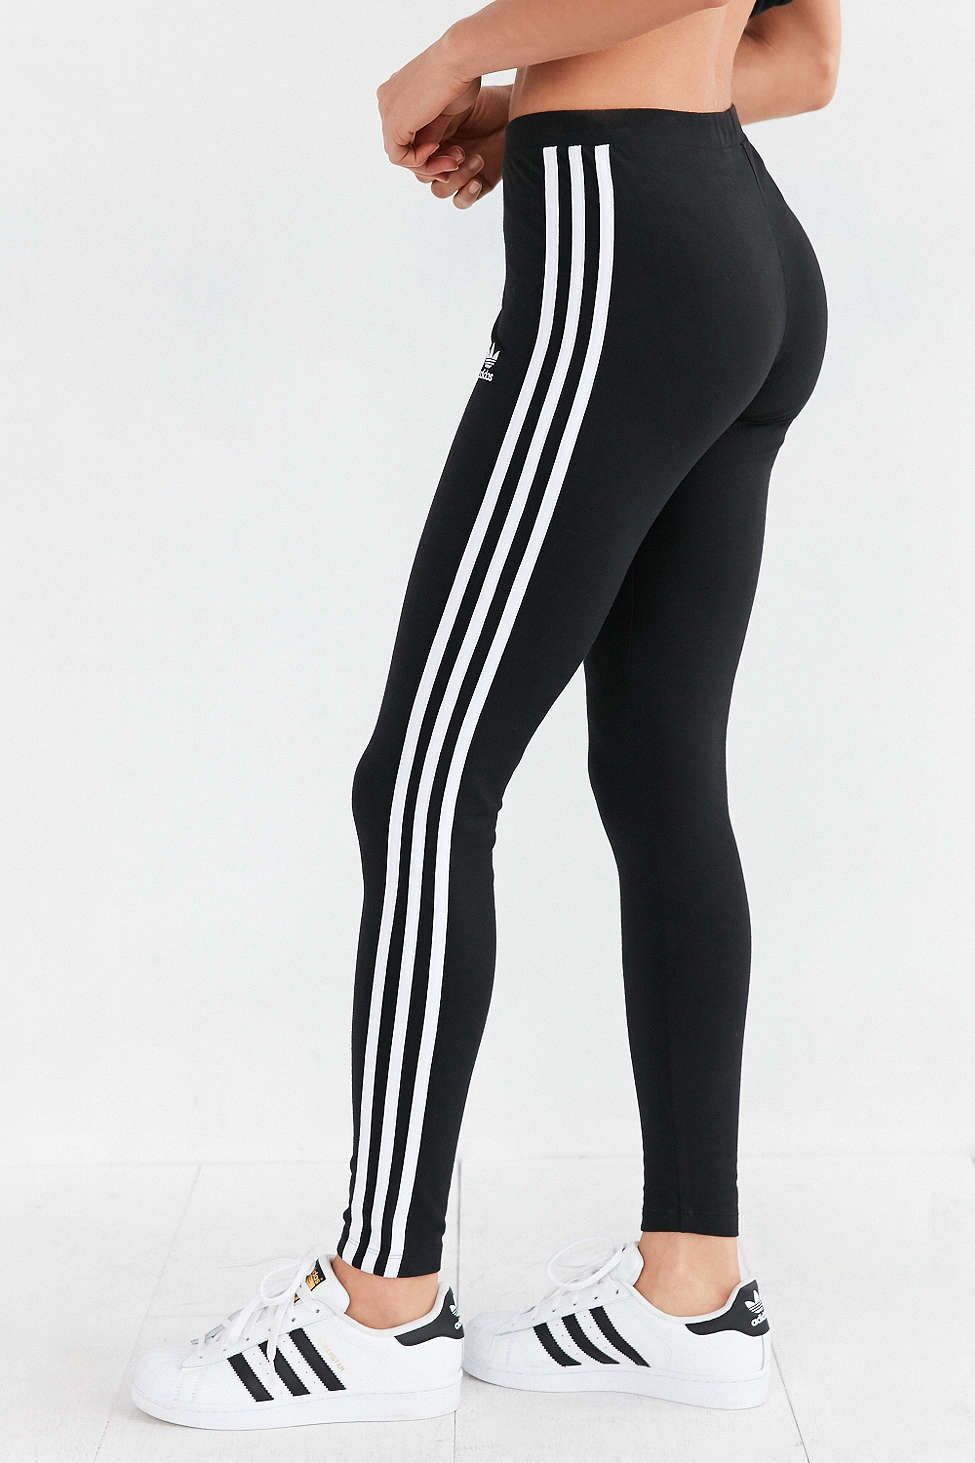 26b5efe5cdd adidas on in 2019 | Free runs | Striped leggings, Adidas, Women's ...